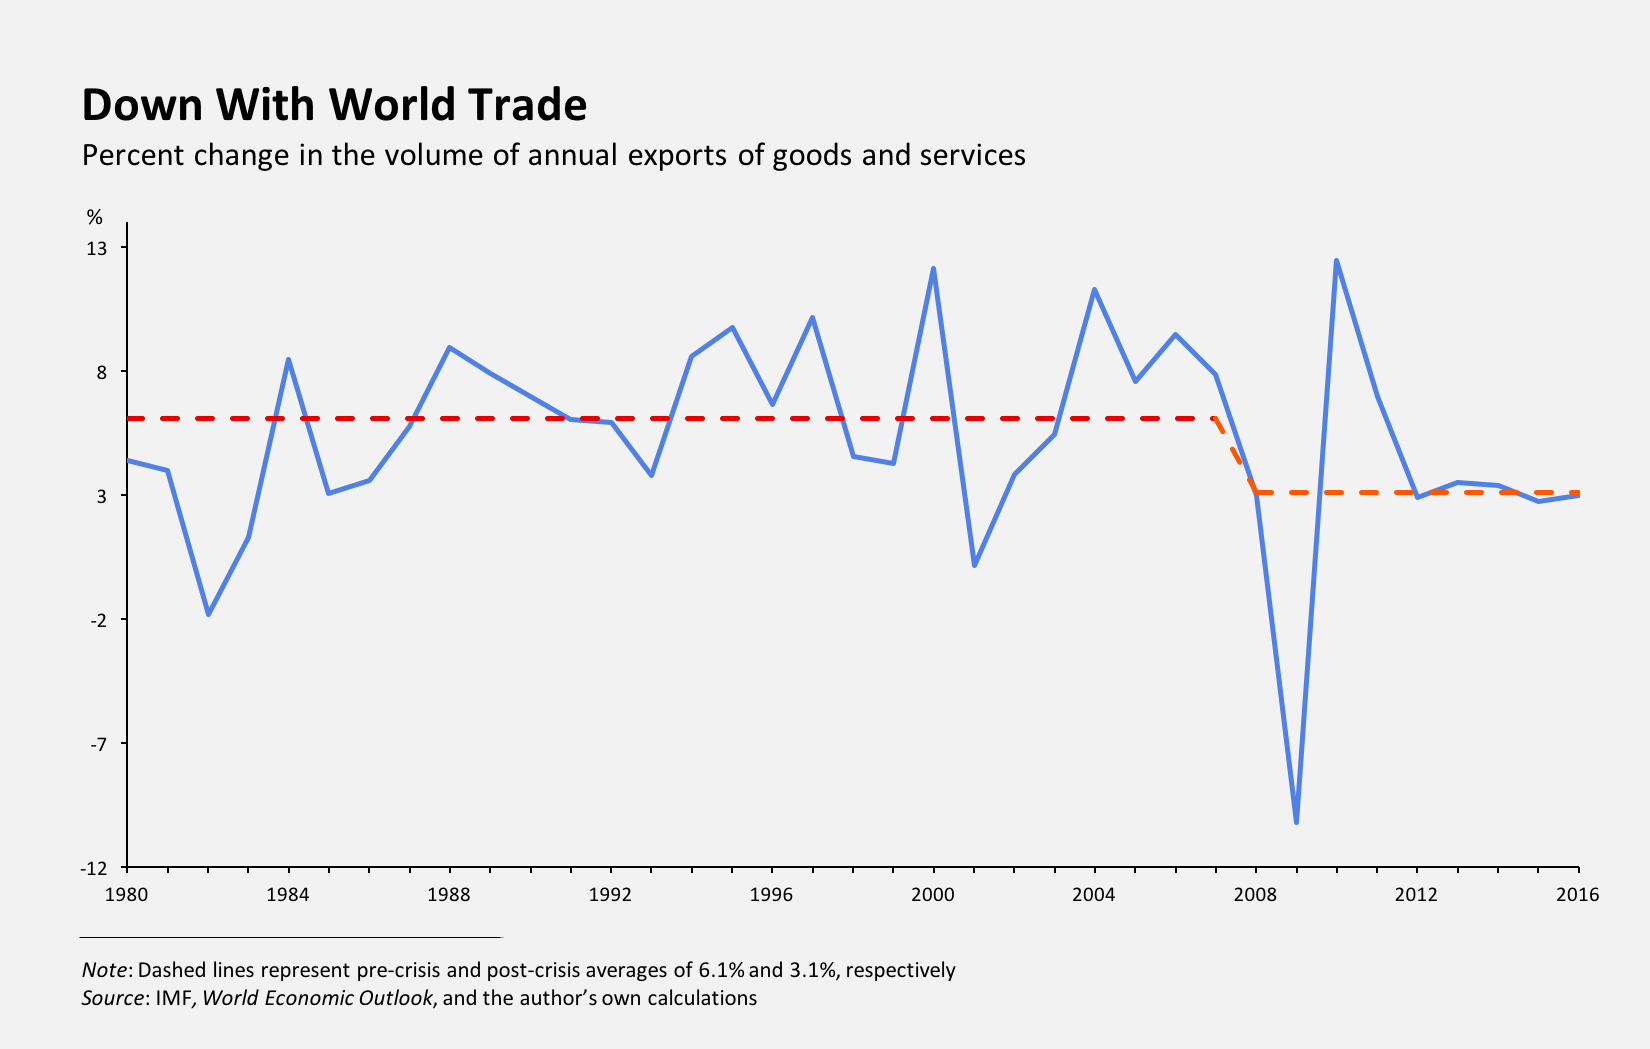 Down with world trade: Percentage change in the volume of annual exports of goods and services